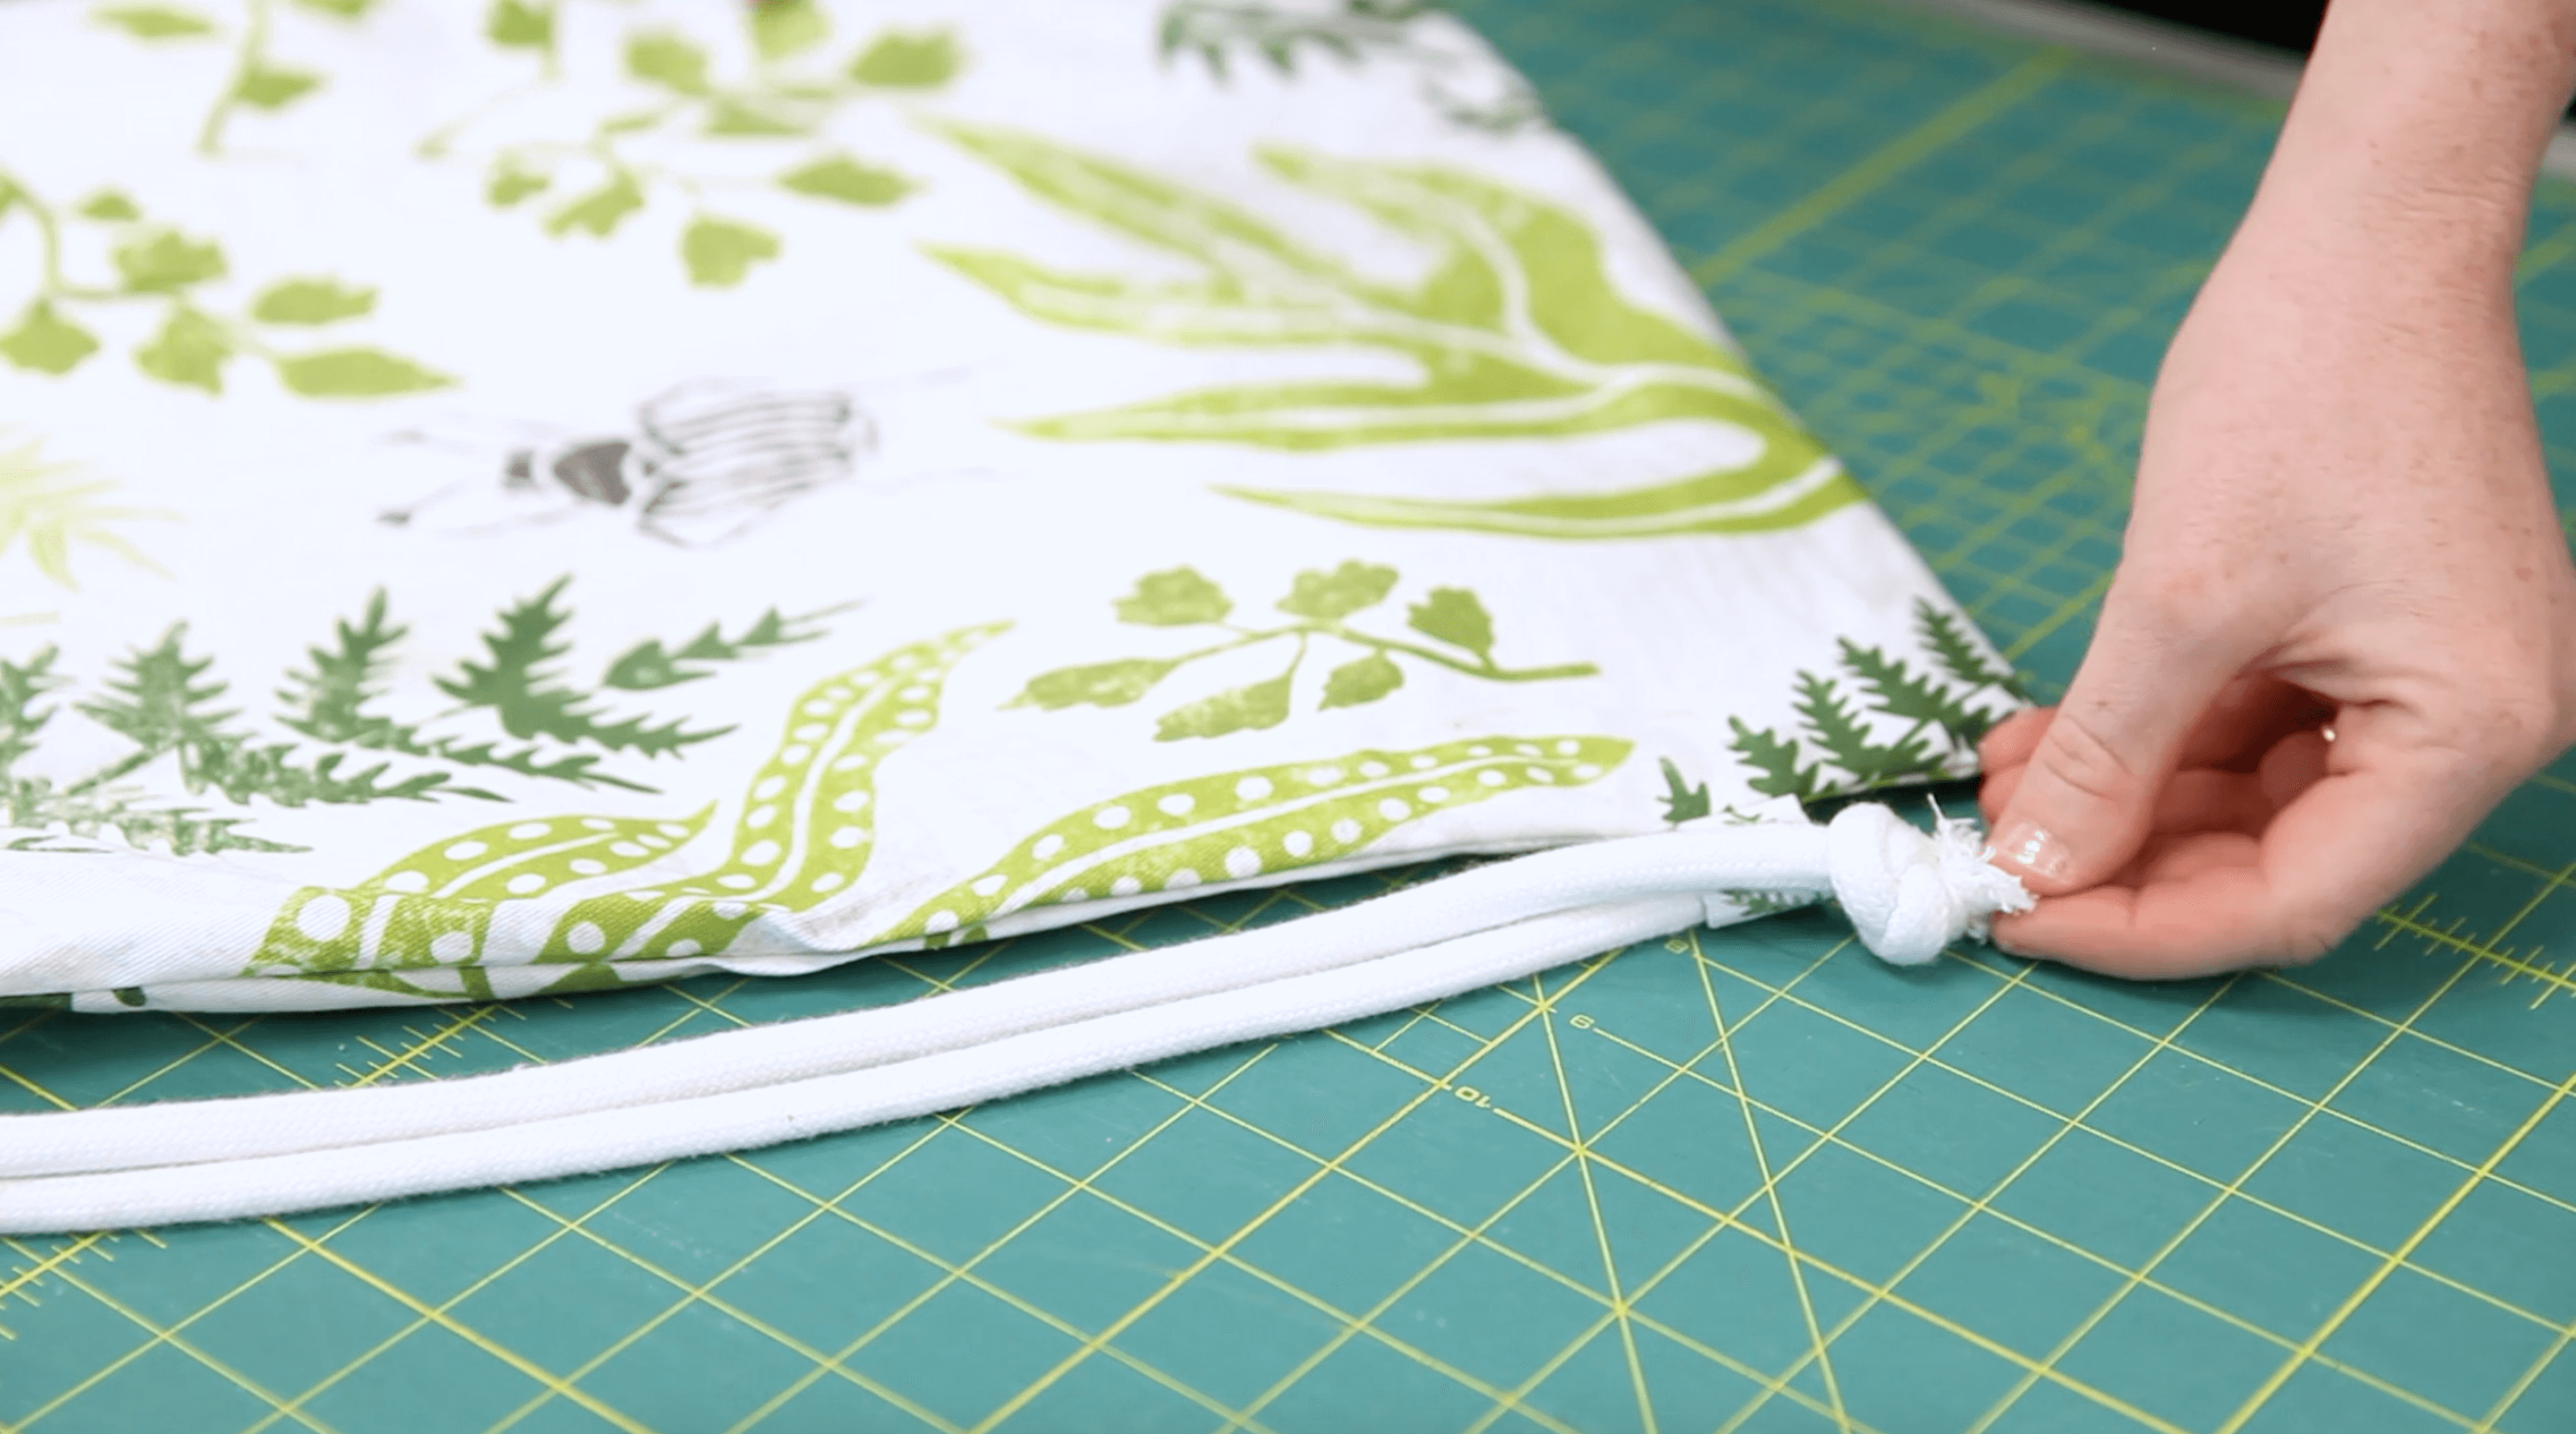 DIY Drawstring Backpack - thread the drawstring | Spoonflower Blog